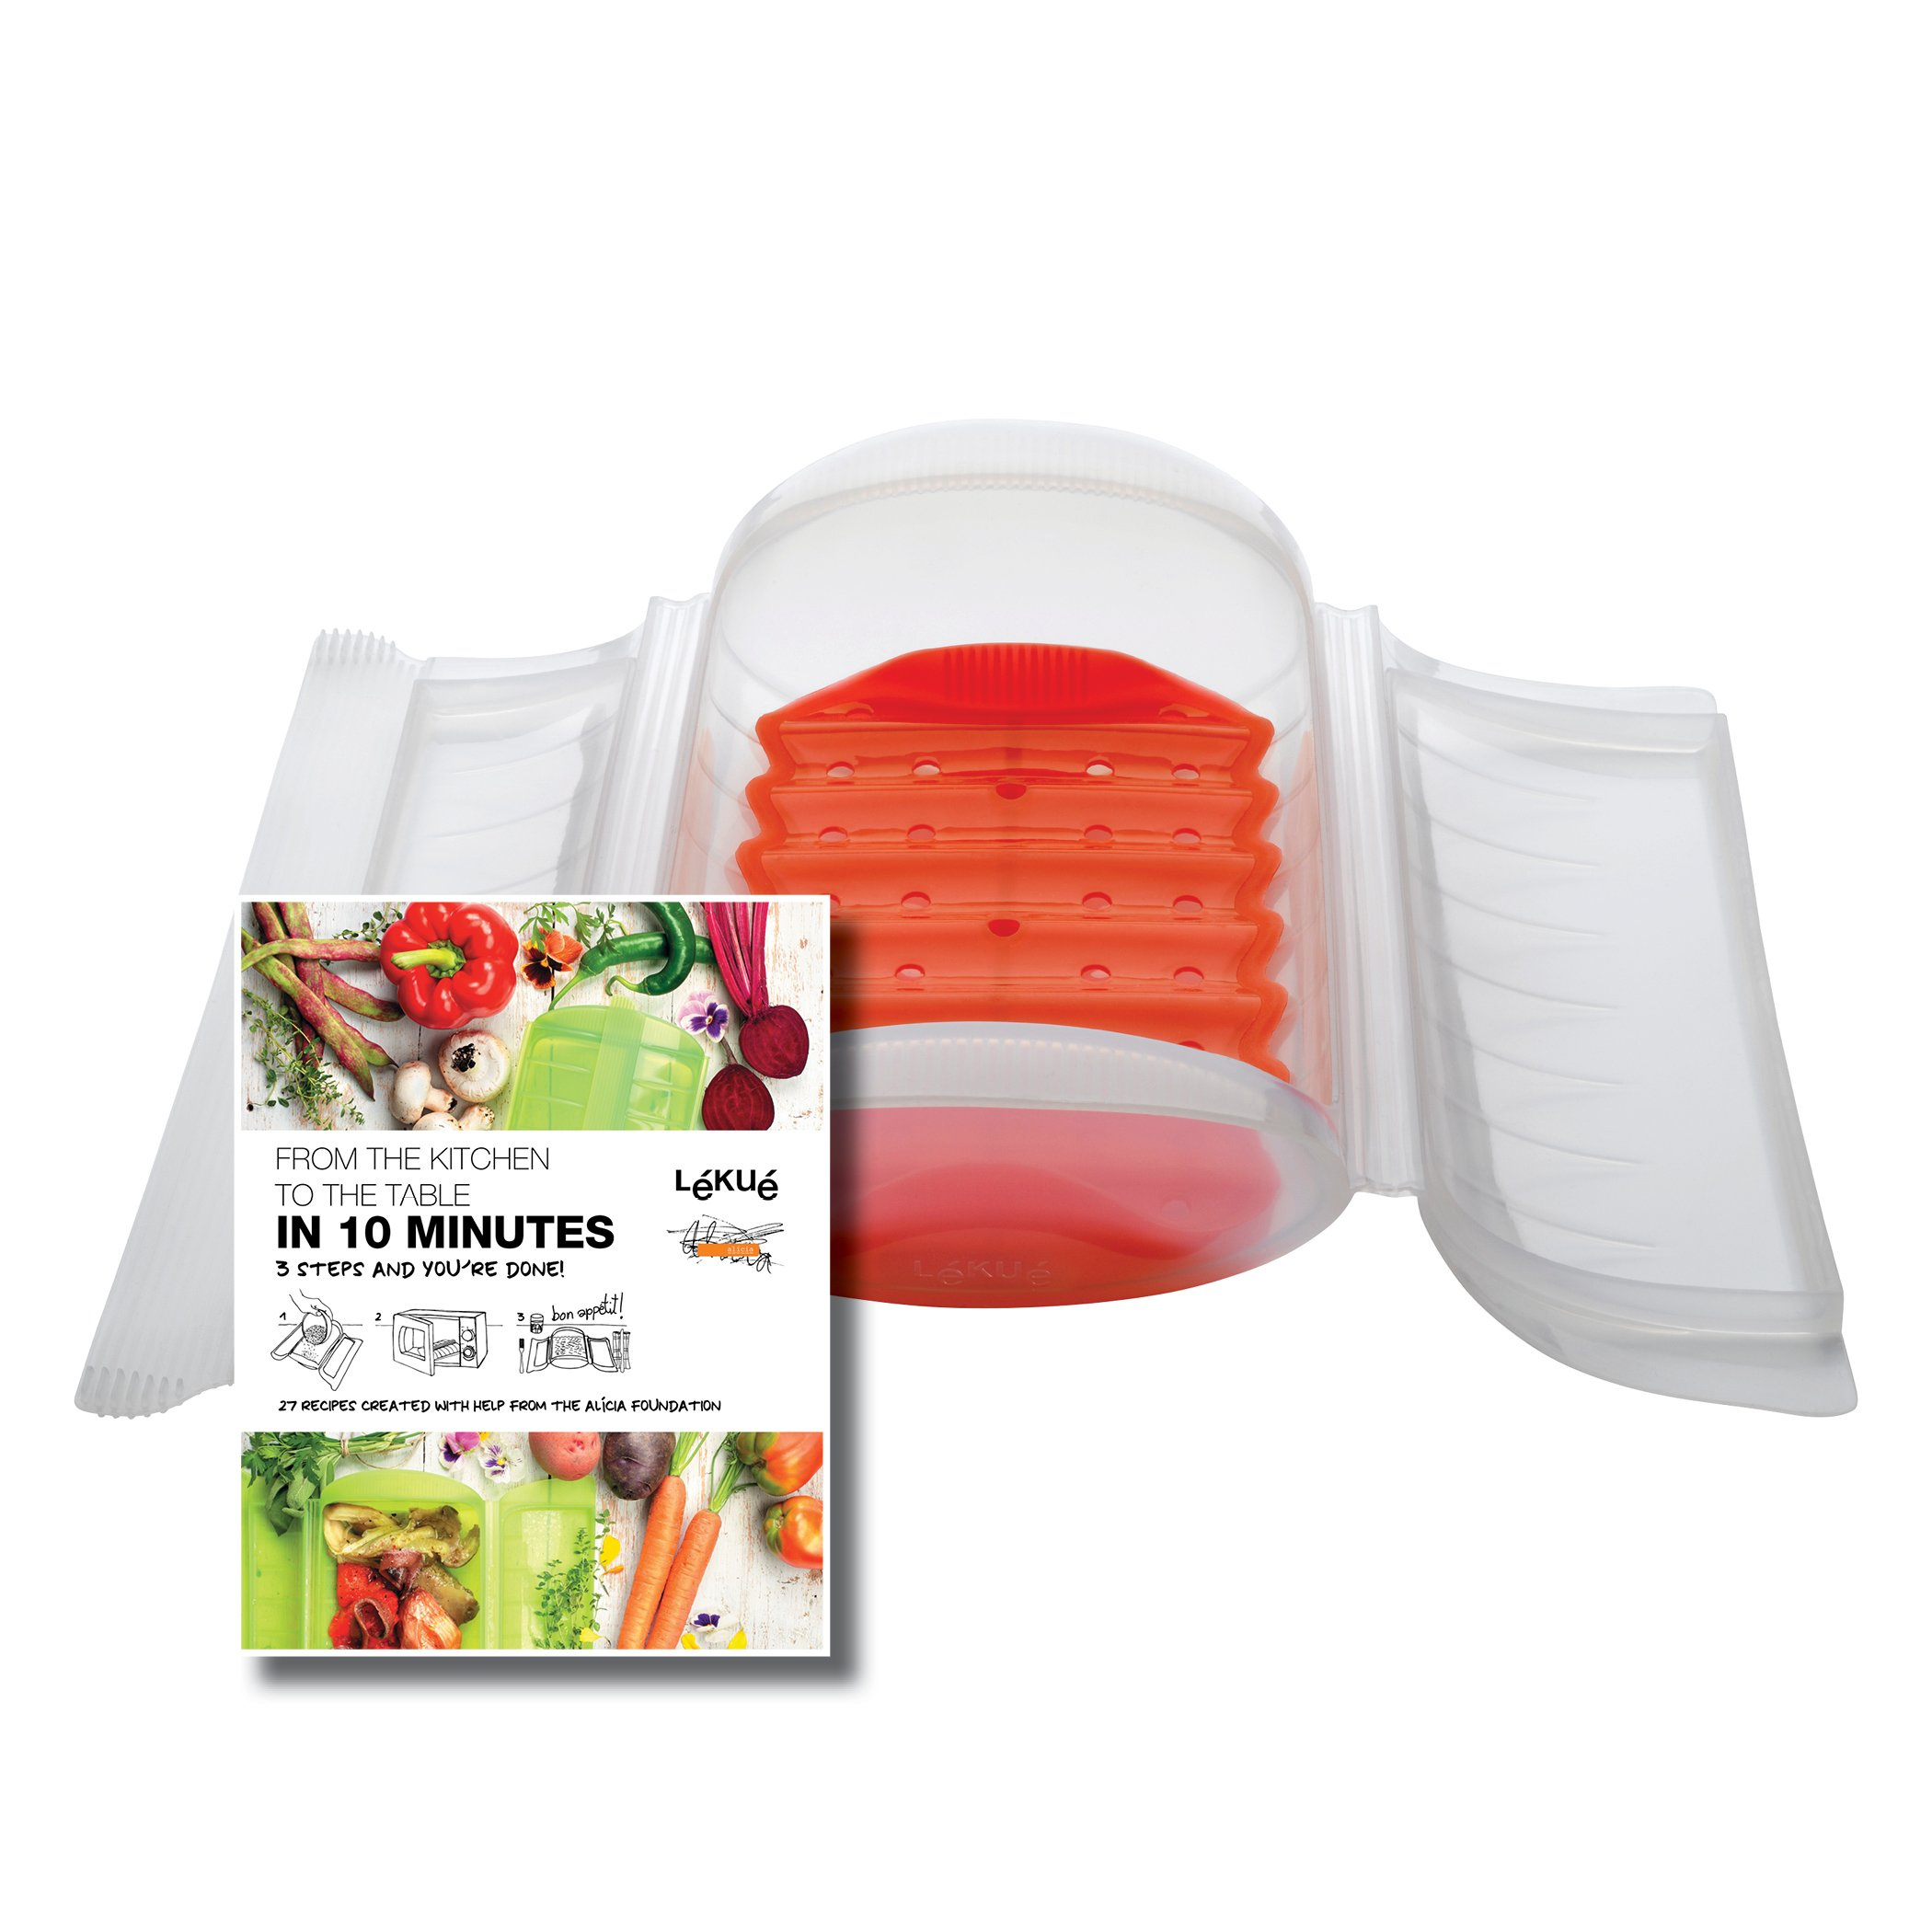 Lekue 3-4 Person Steam Case With Draining Tray and Bonus 10 Minute Cookbook, Clear